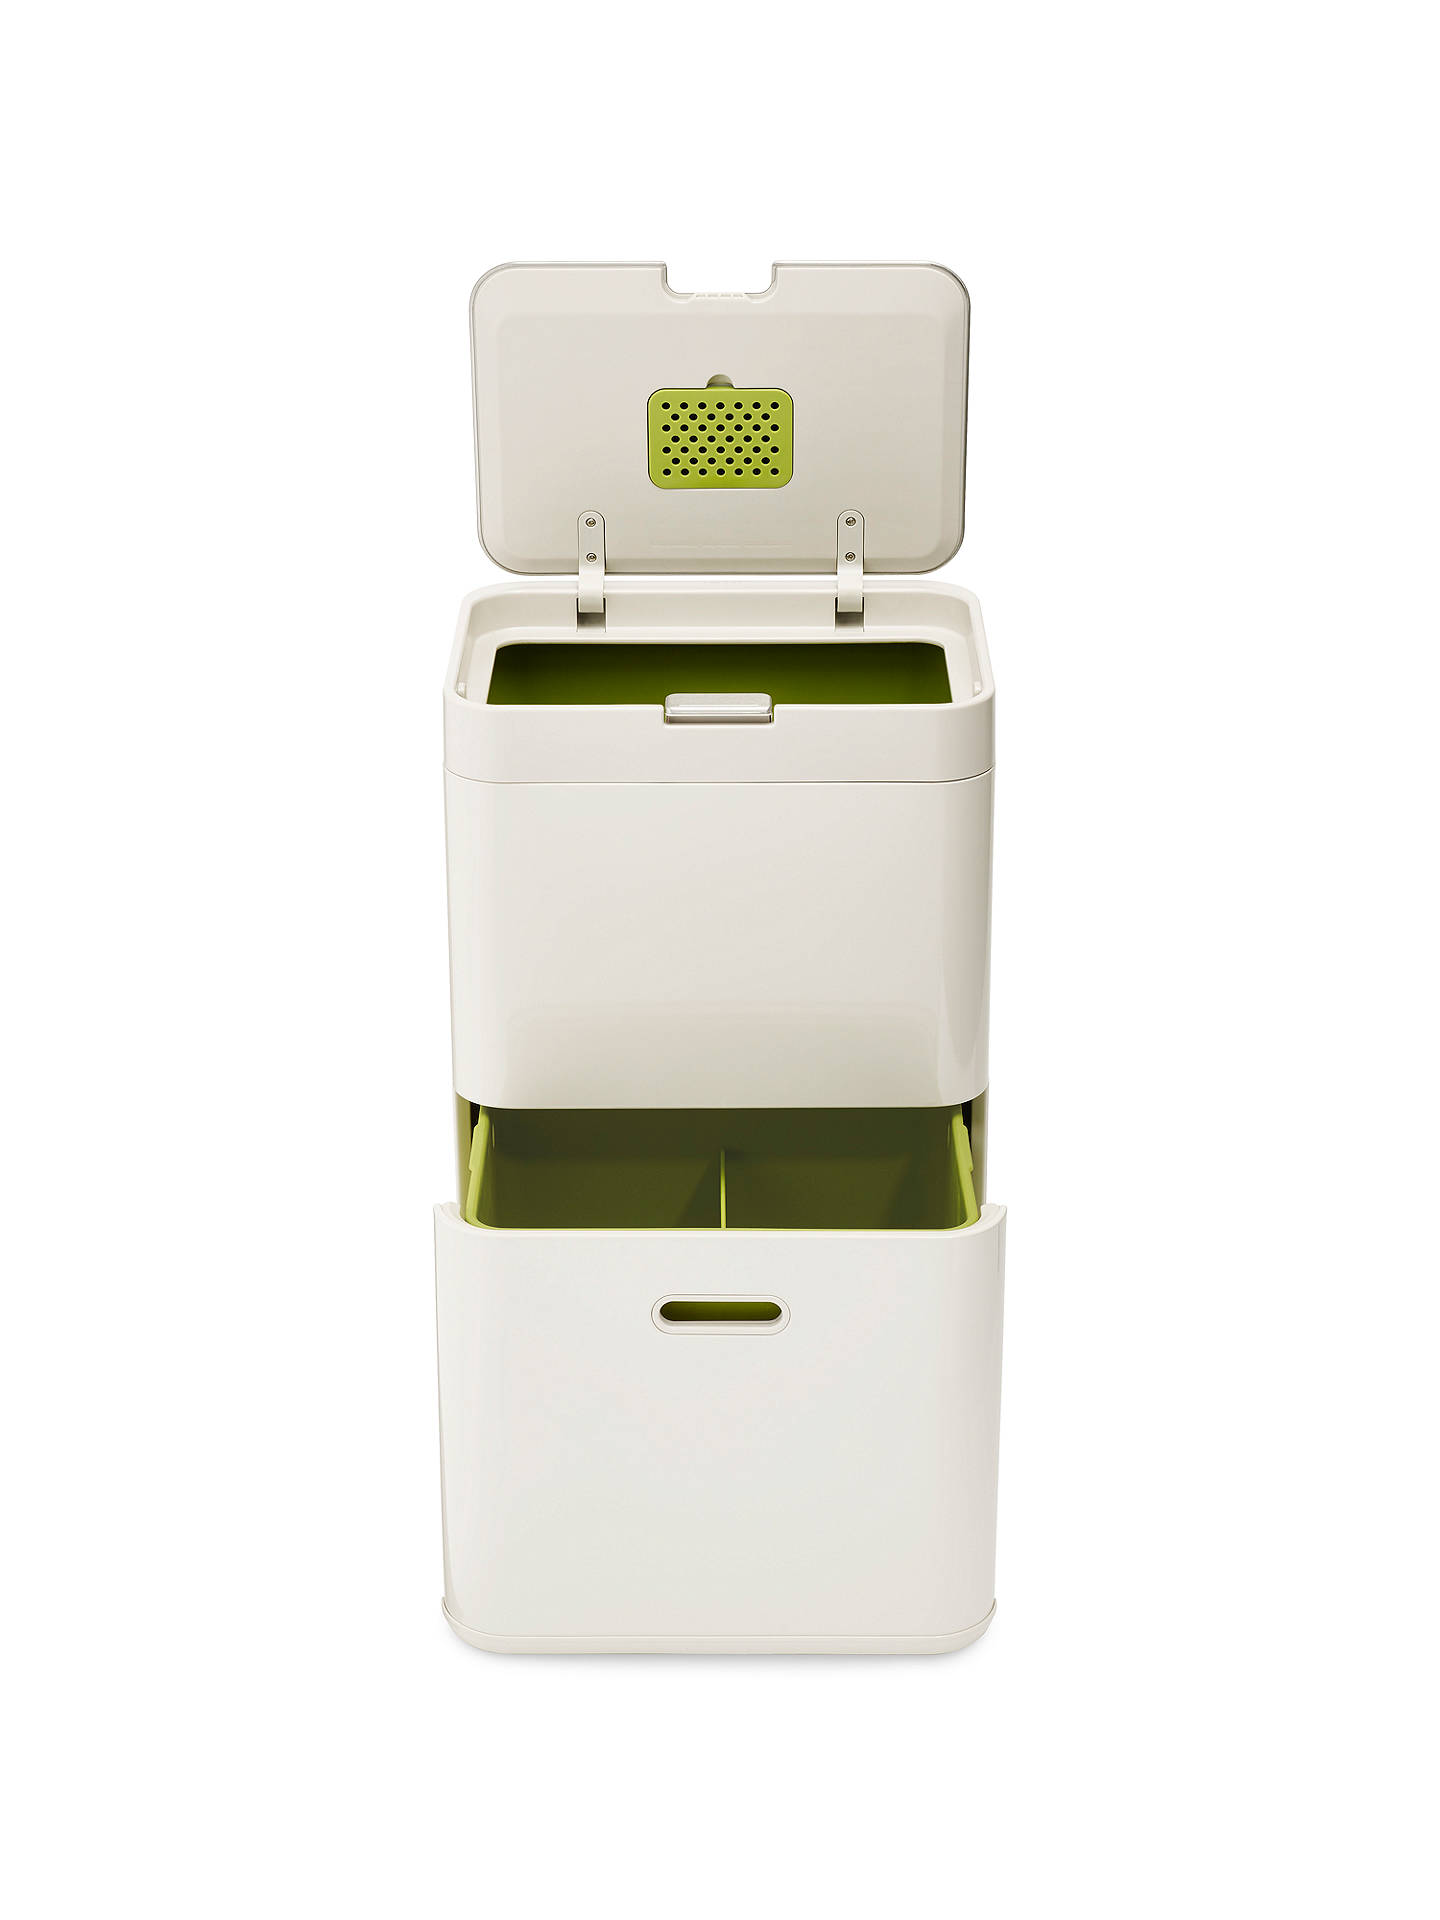 Buy Joseph Joseph Intelligent Waste Totem Recycling Separation Unit, 48L, Stone Online at johnlewis.com